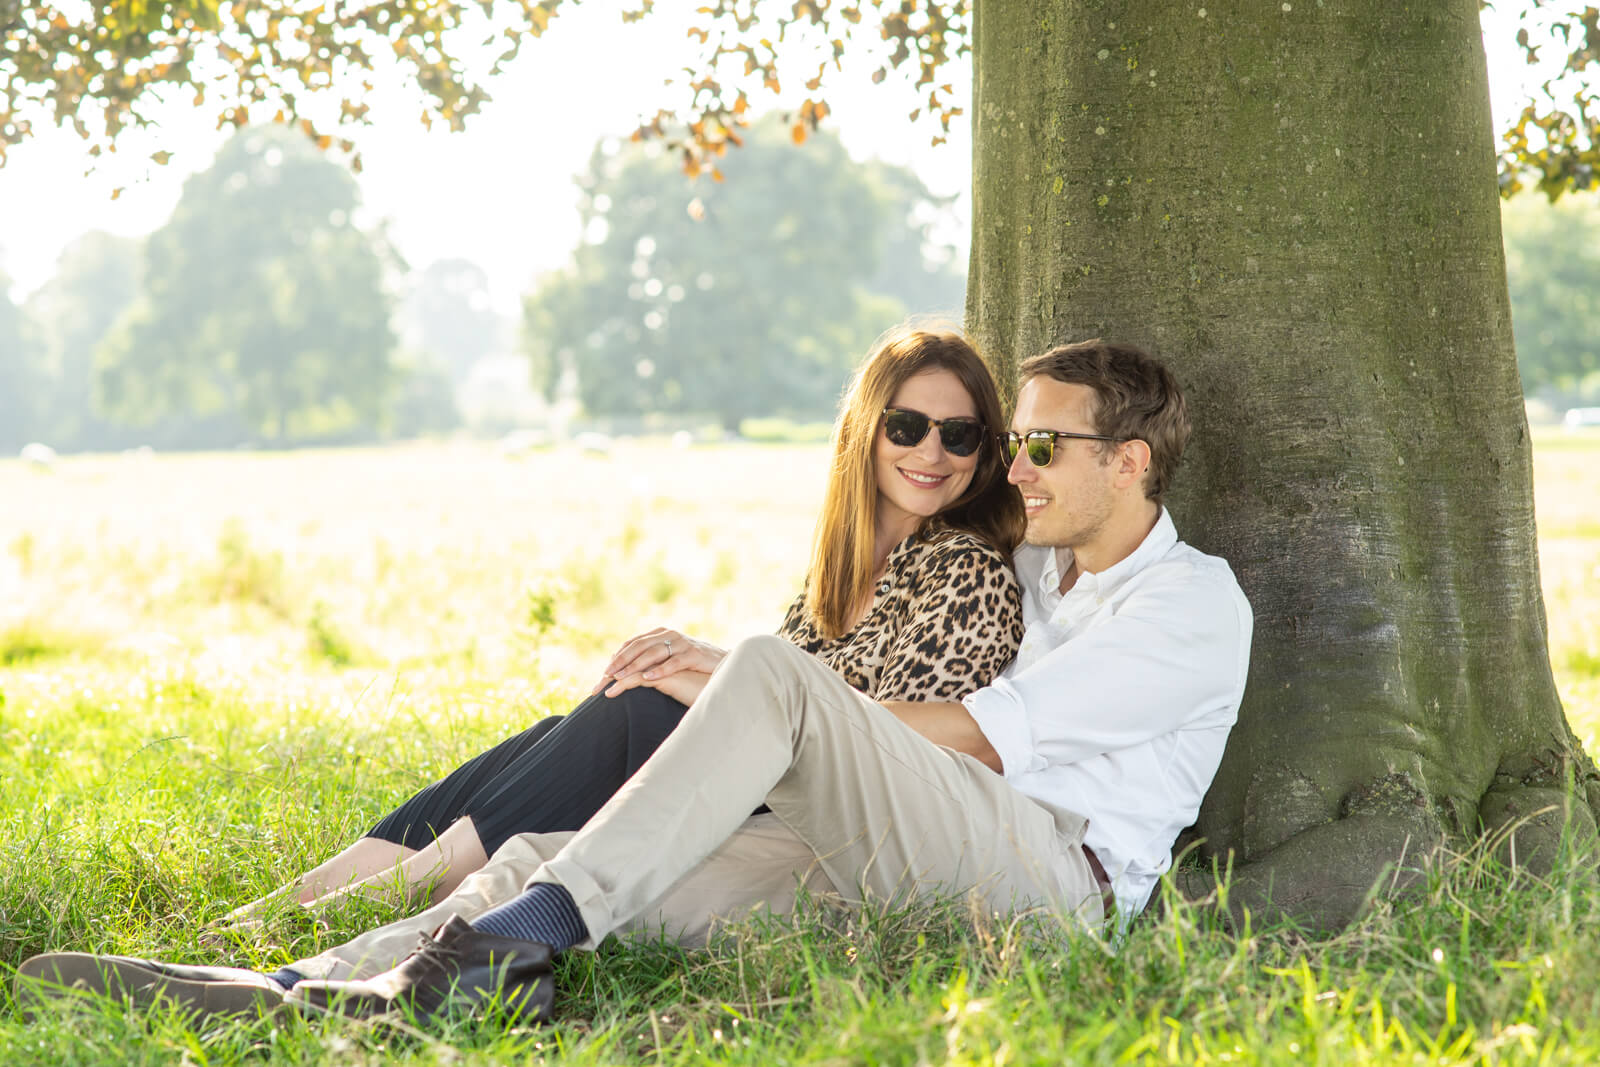 Young couple sit together under a tree on a summers day